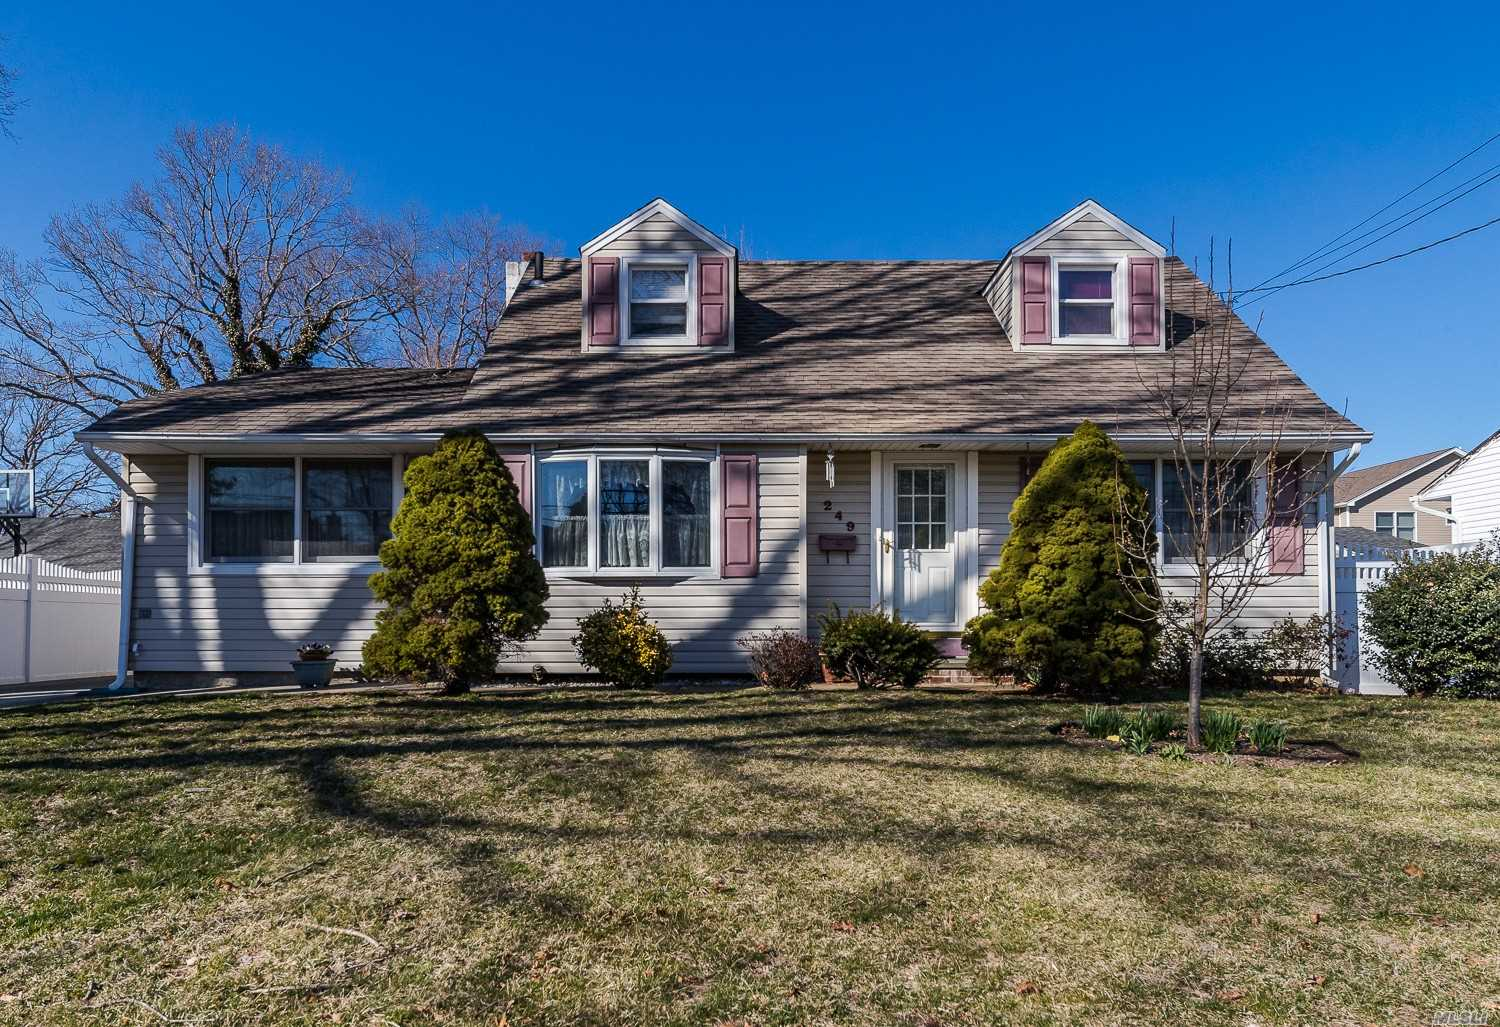 Large Expanded Cape In the Heart of Desirable Incorporated Village of Massapequa Park. Mid Block Location. Features Large Dining Room and Family Room. New Full Bath on lst Floor. Expanded driveway to 1 1/2 Car Garage, with nice yard. Taxes are being grieved, All Info should be verified. JUST REDUCED.